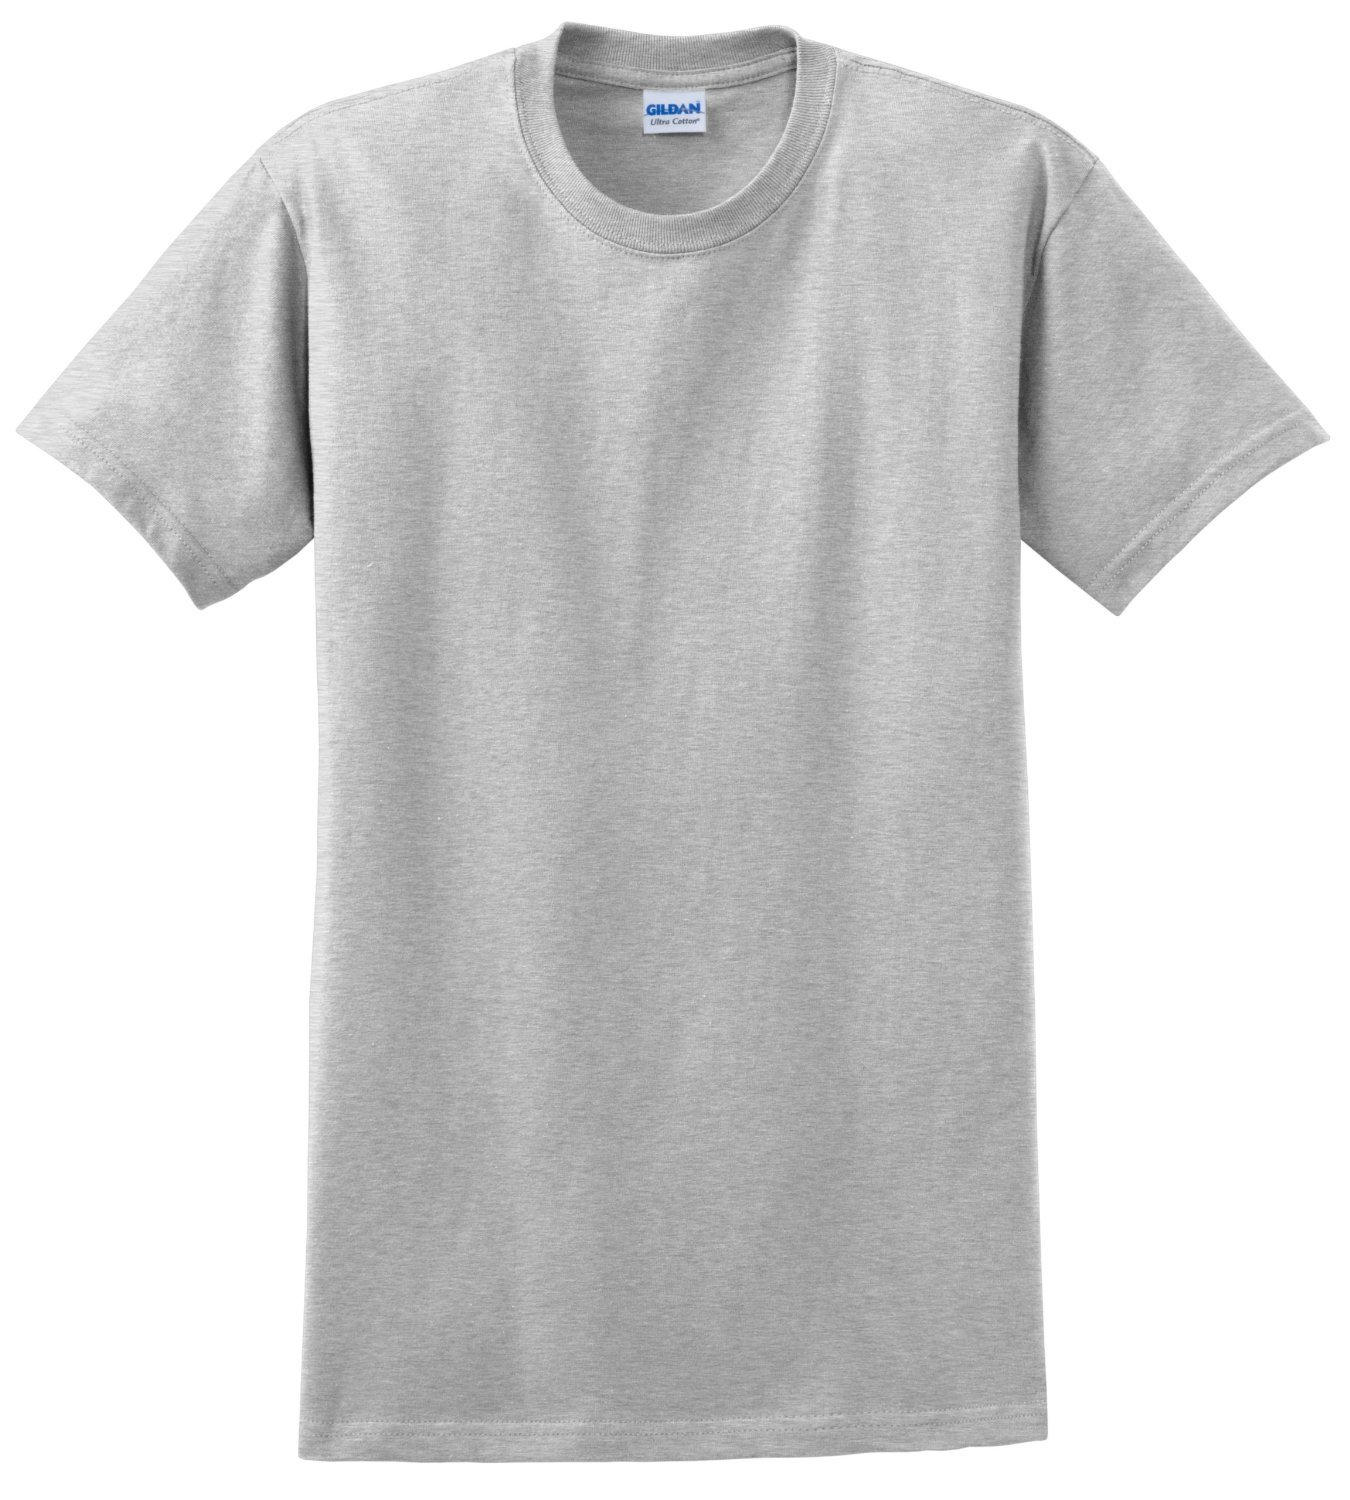 Shop for mens cotton t shirts online at Target. Free shipping on purchases over $35 and save 5% every day with your Target REDcard.